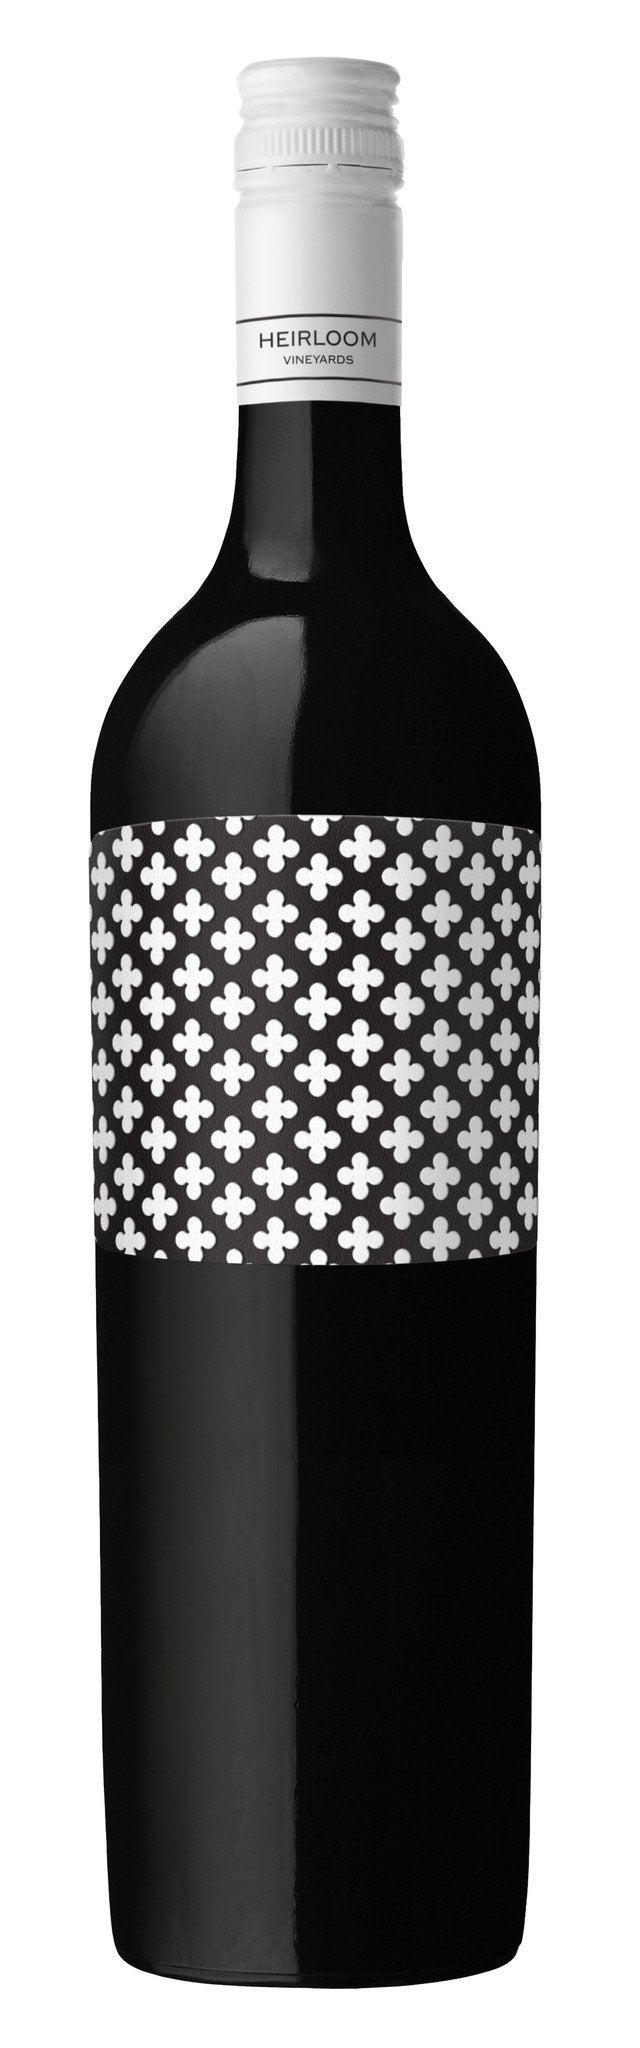 A'Lambra Eden Valley Shiraz 2014